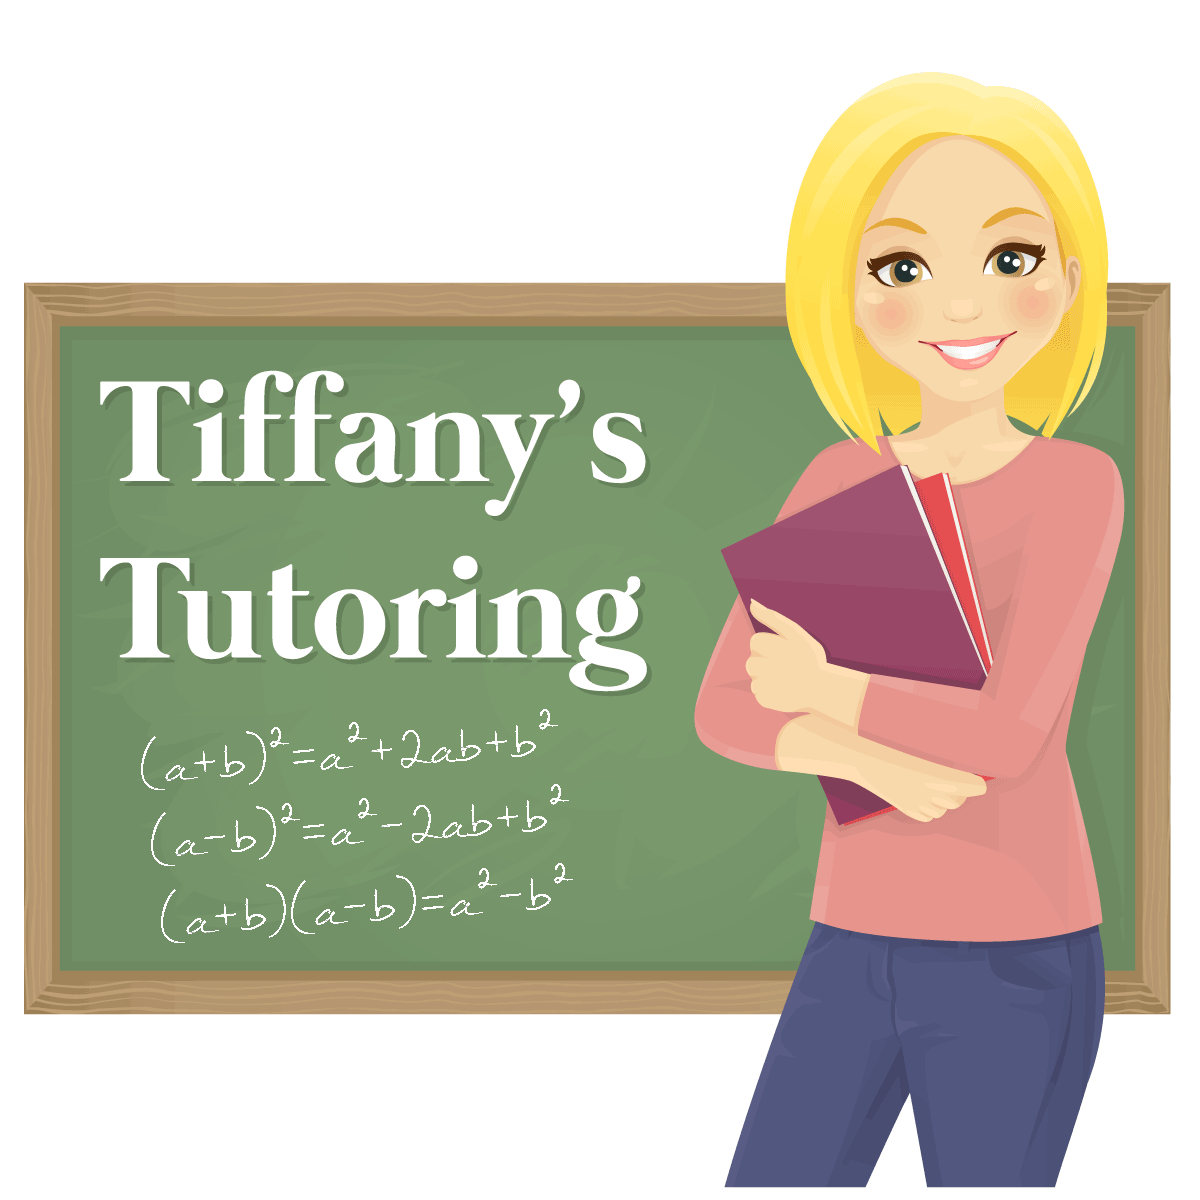 Tiffany's Tutoring